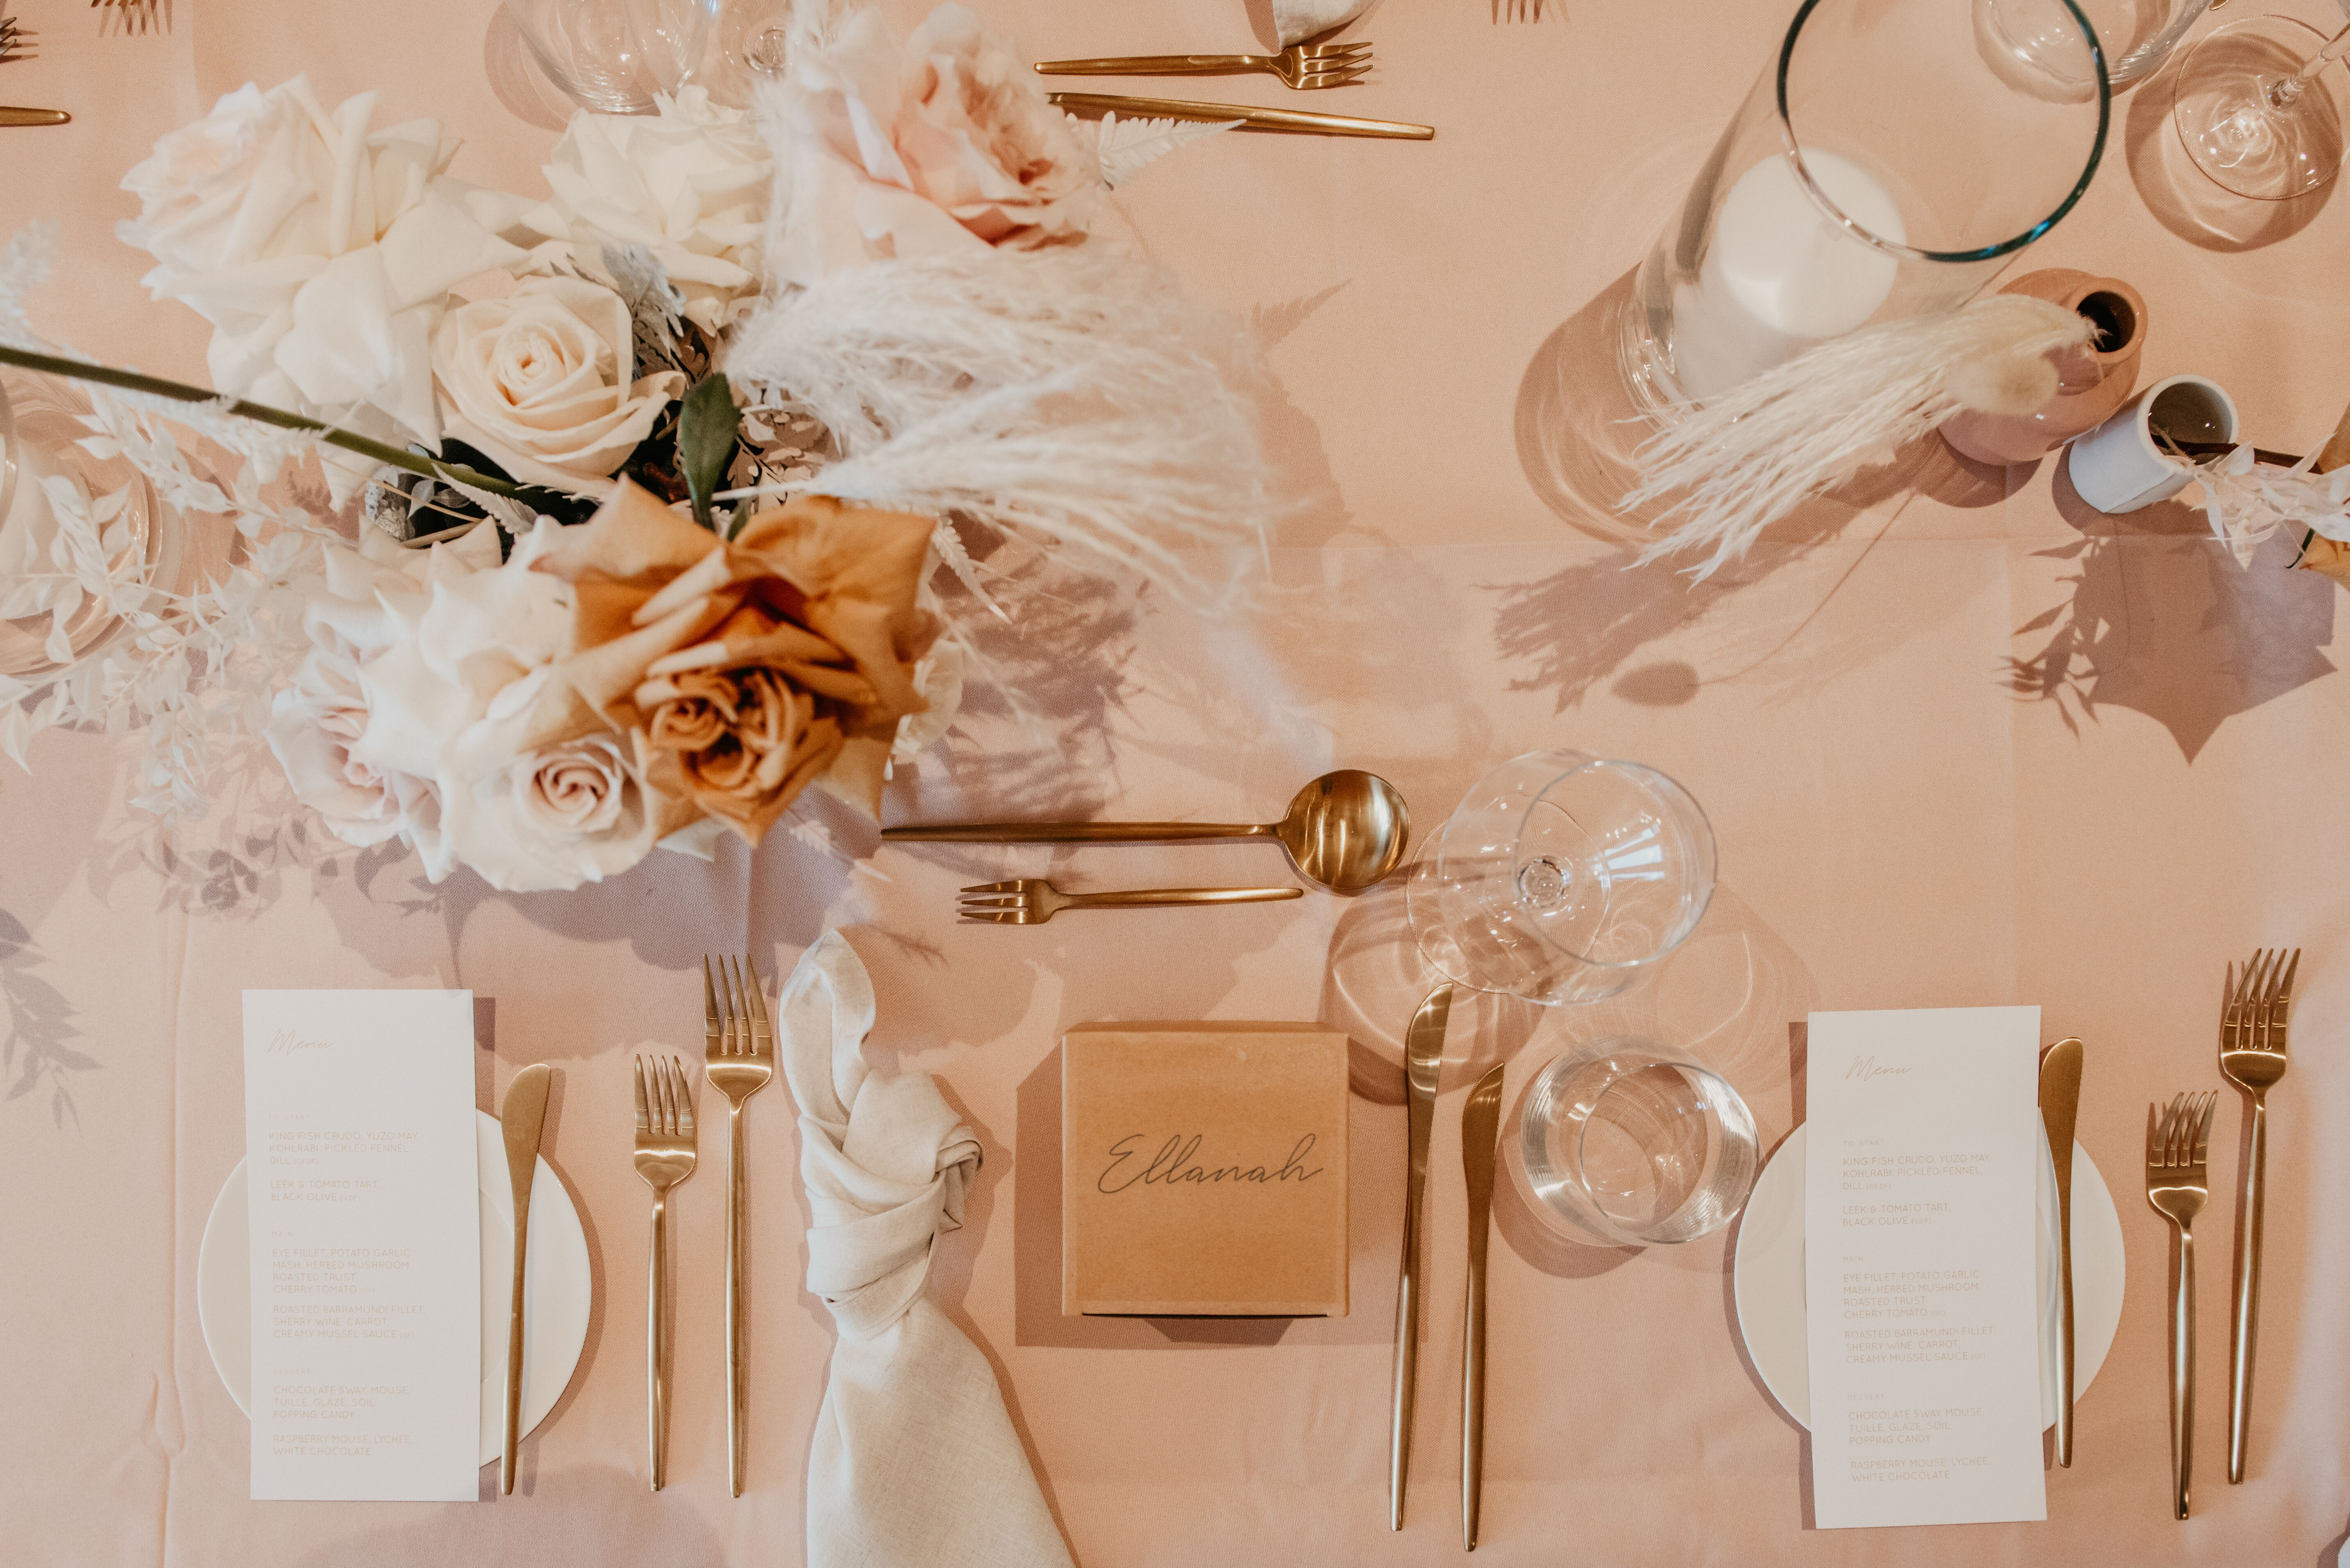 the wedding school white+white weddings and events the calile wedding table styling pink blush gold tones cutlery